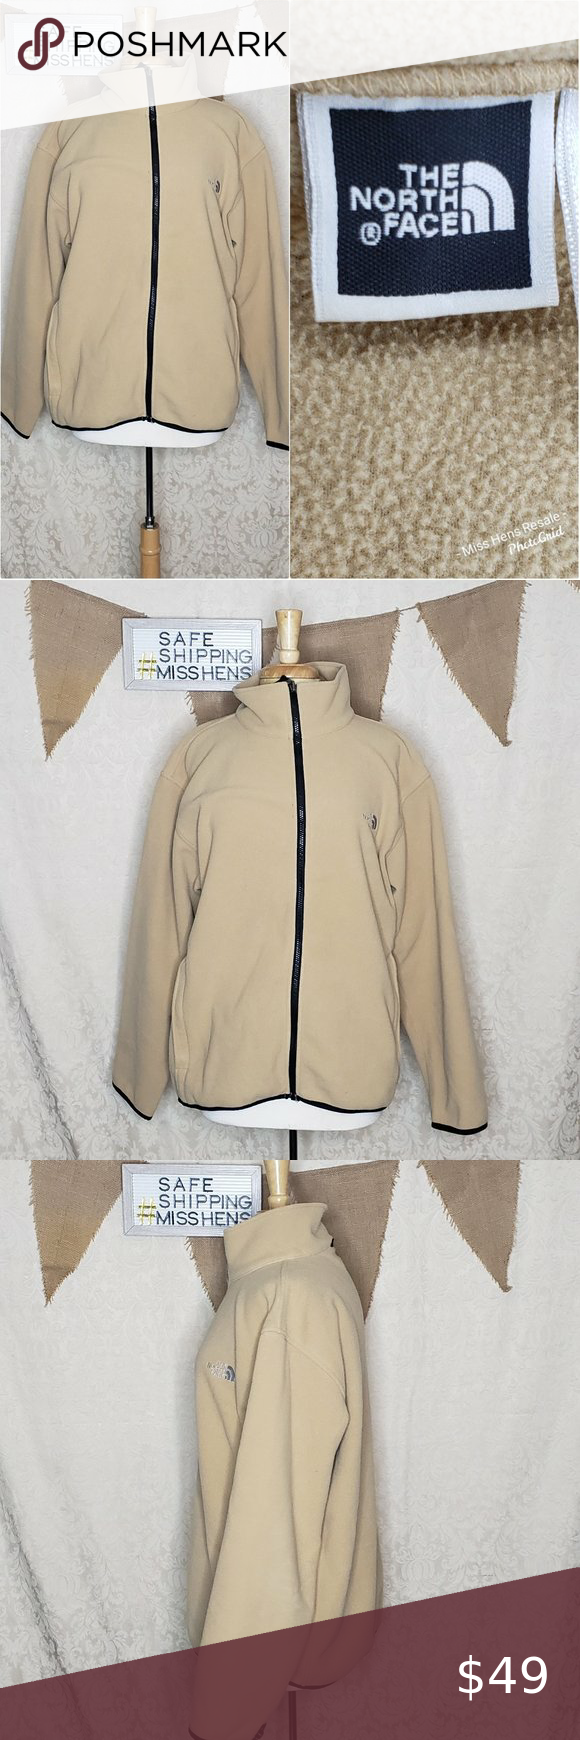 The North Face Mens Tan Full Zip Jacket In 2020 North Face Mens Zip Jackets The North Face [ 1740 x 580 Pixel ]